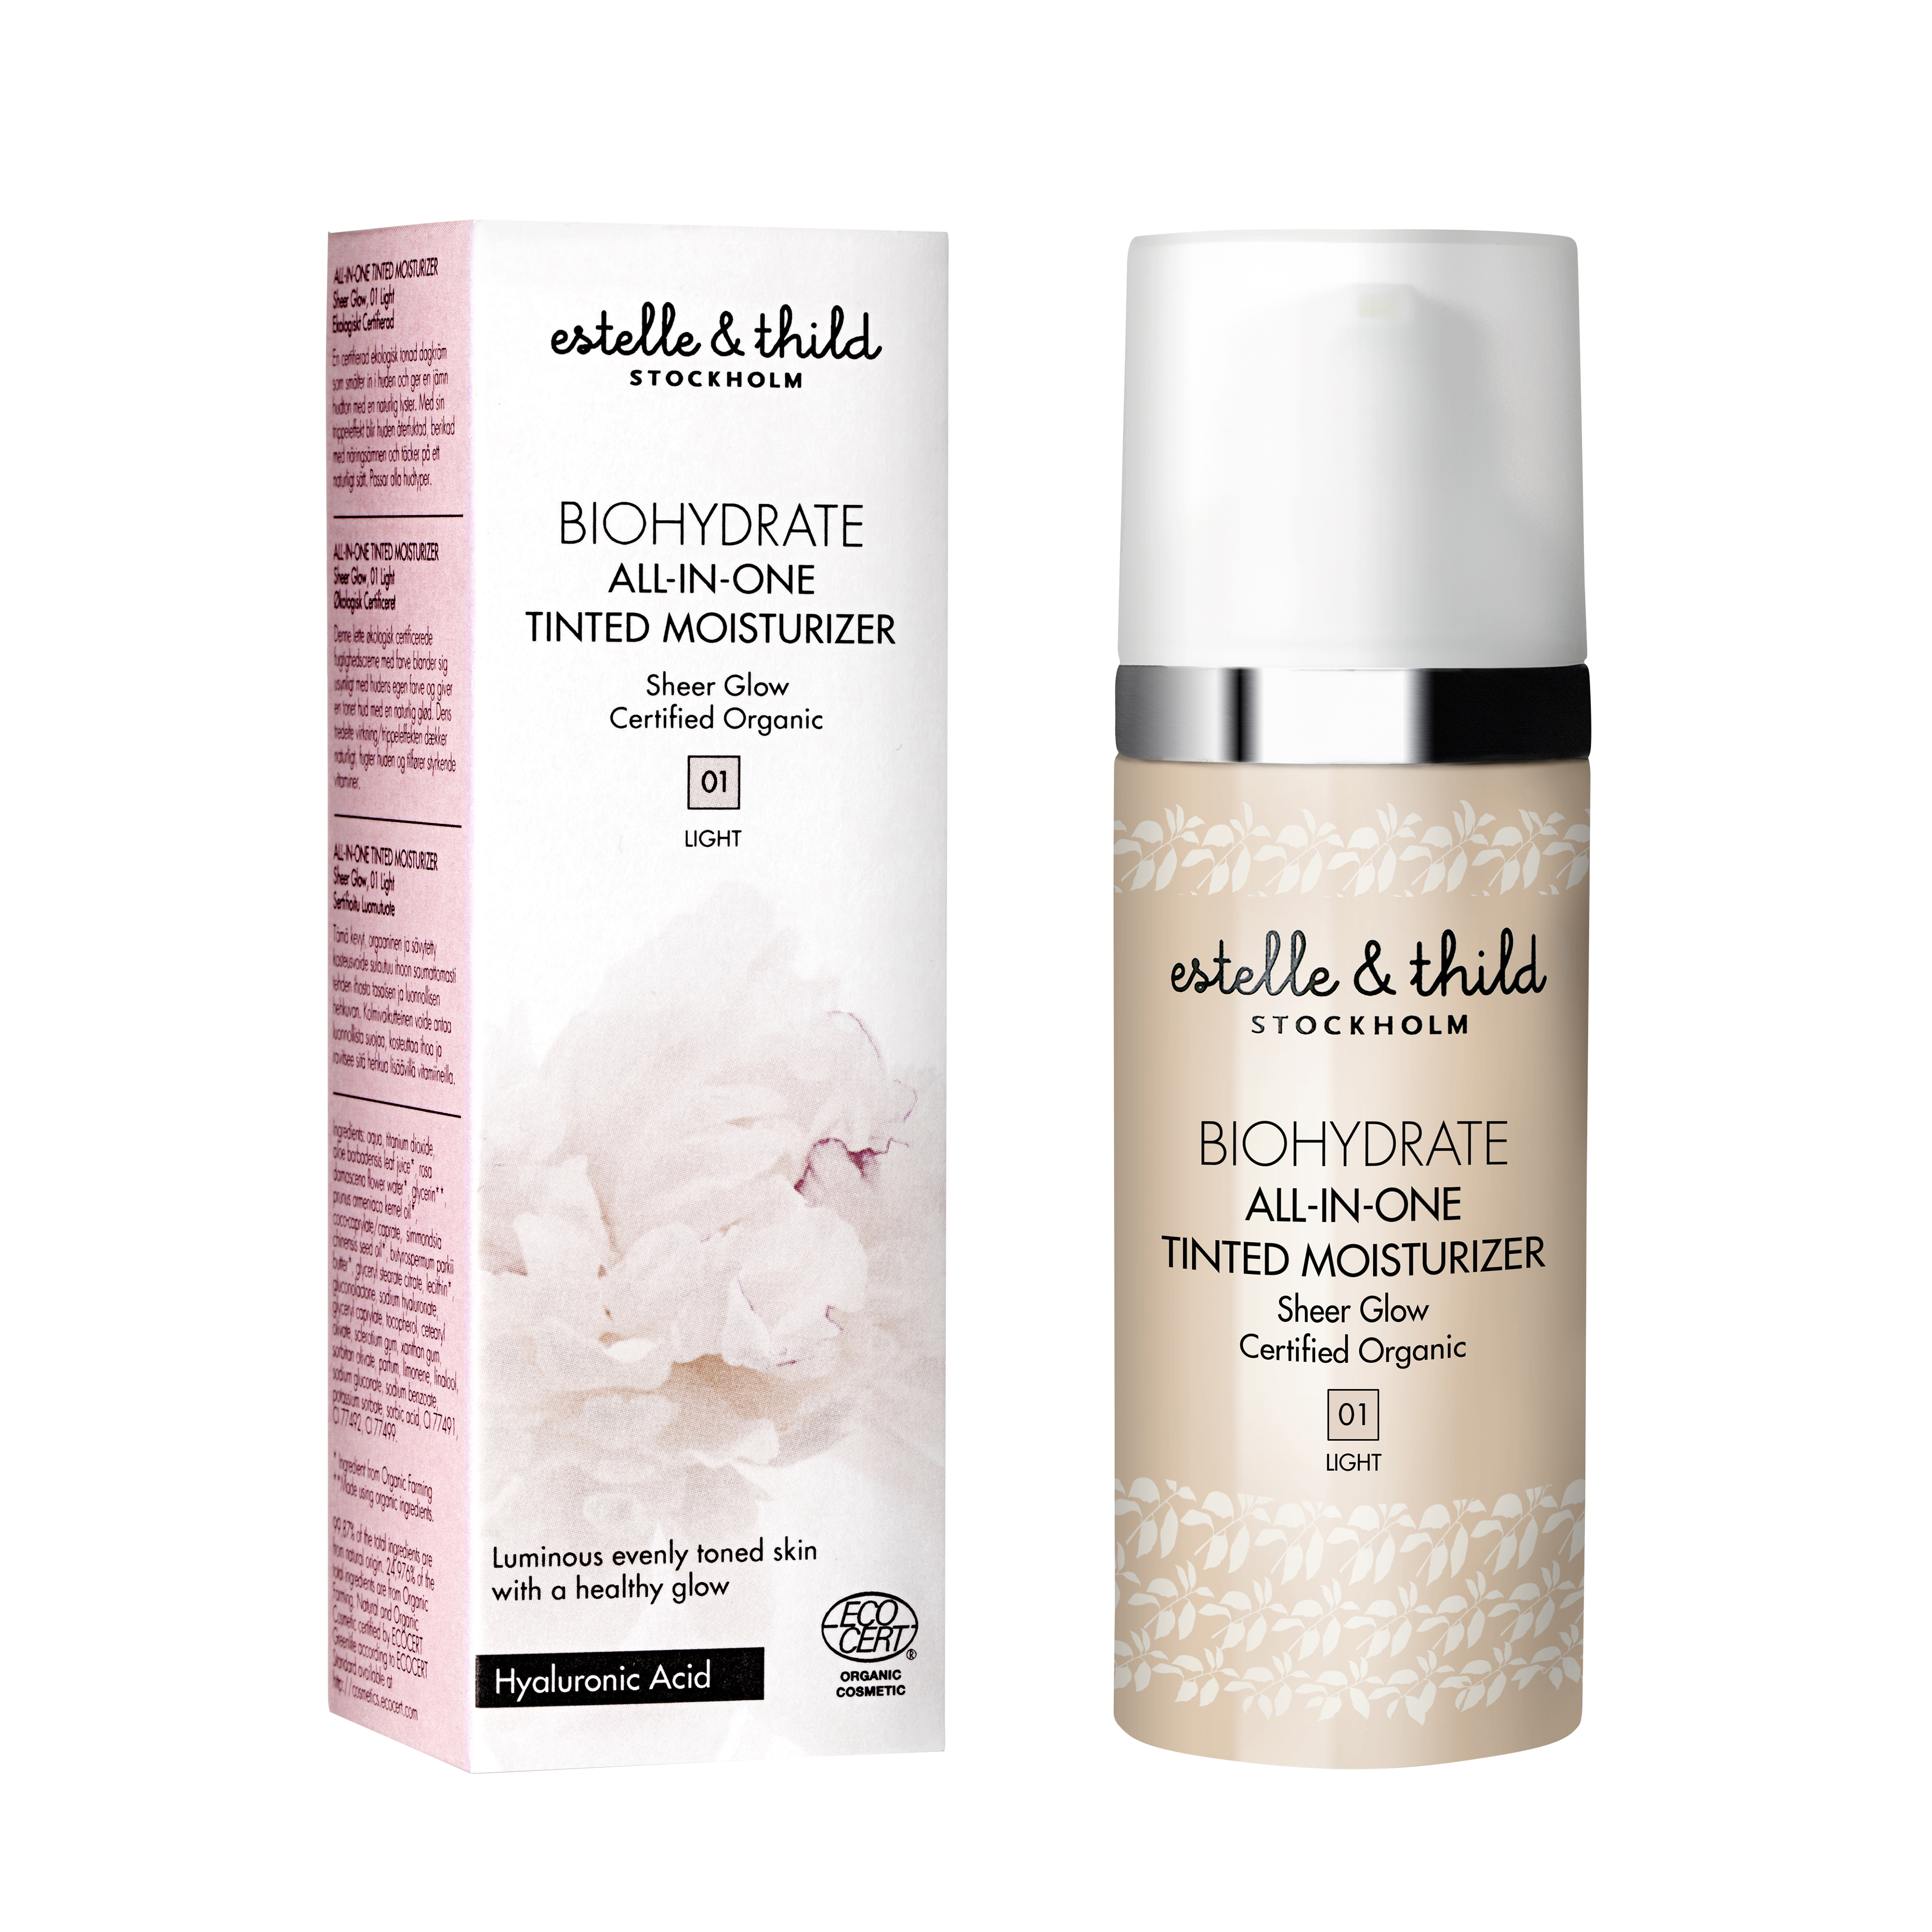 BioHydrate All-In-One Tinted Moisturiser 01 Light